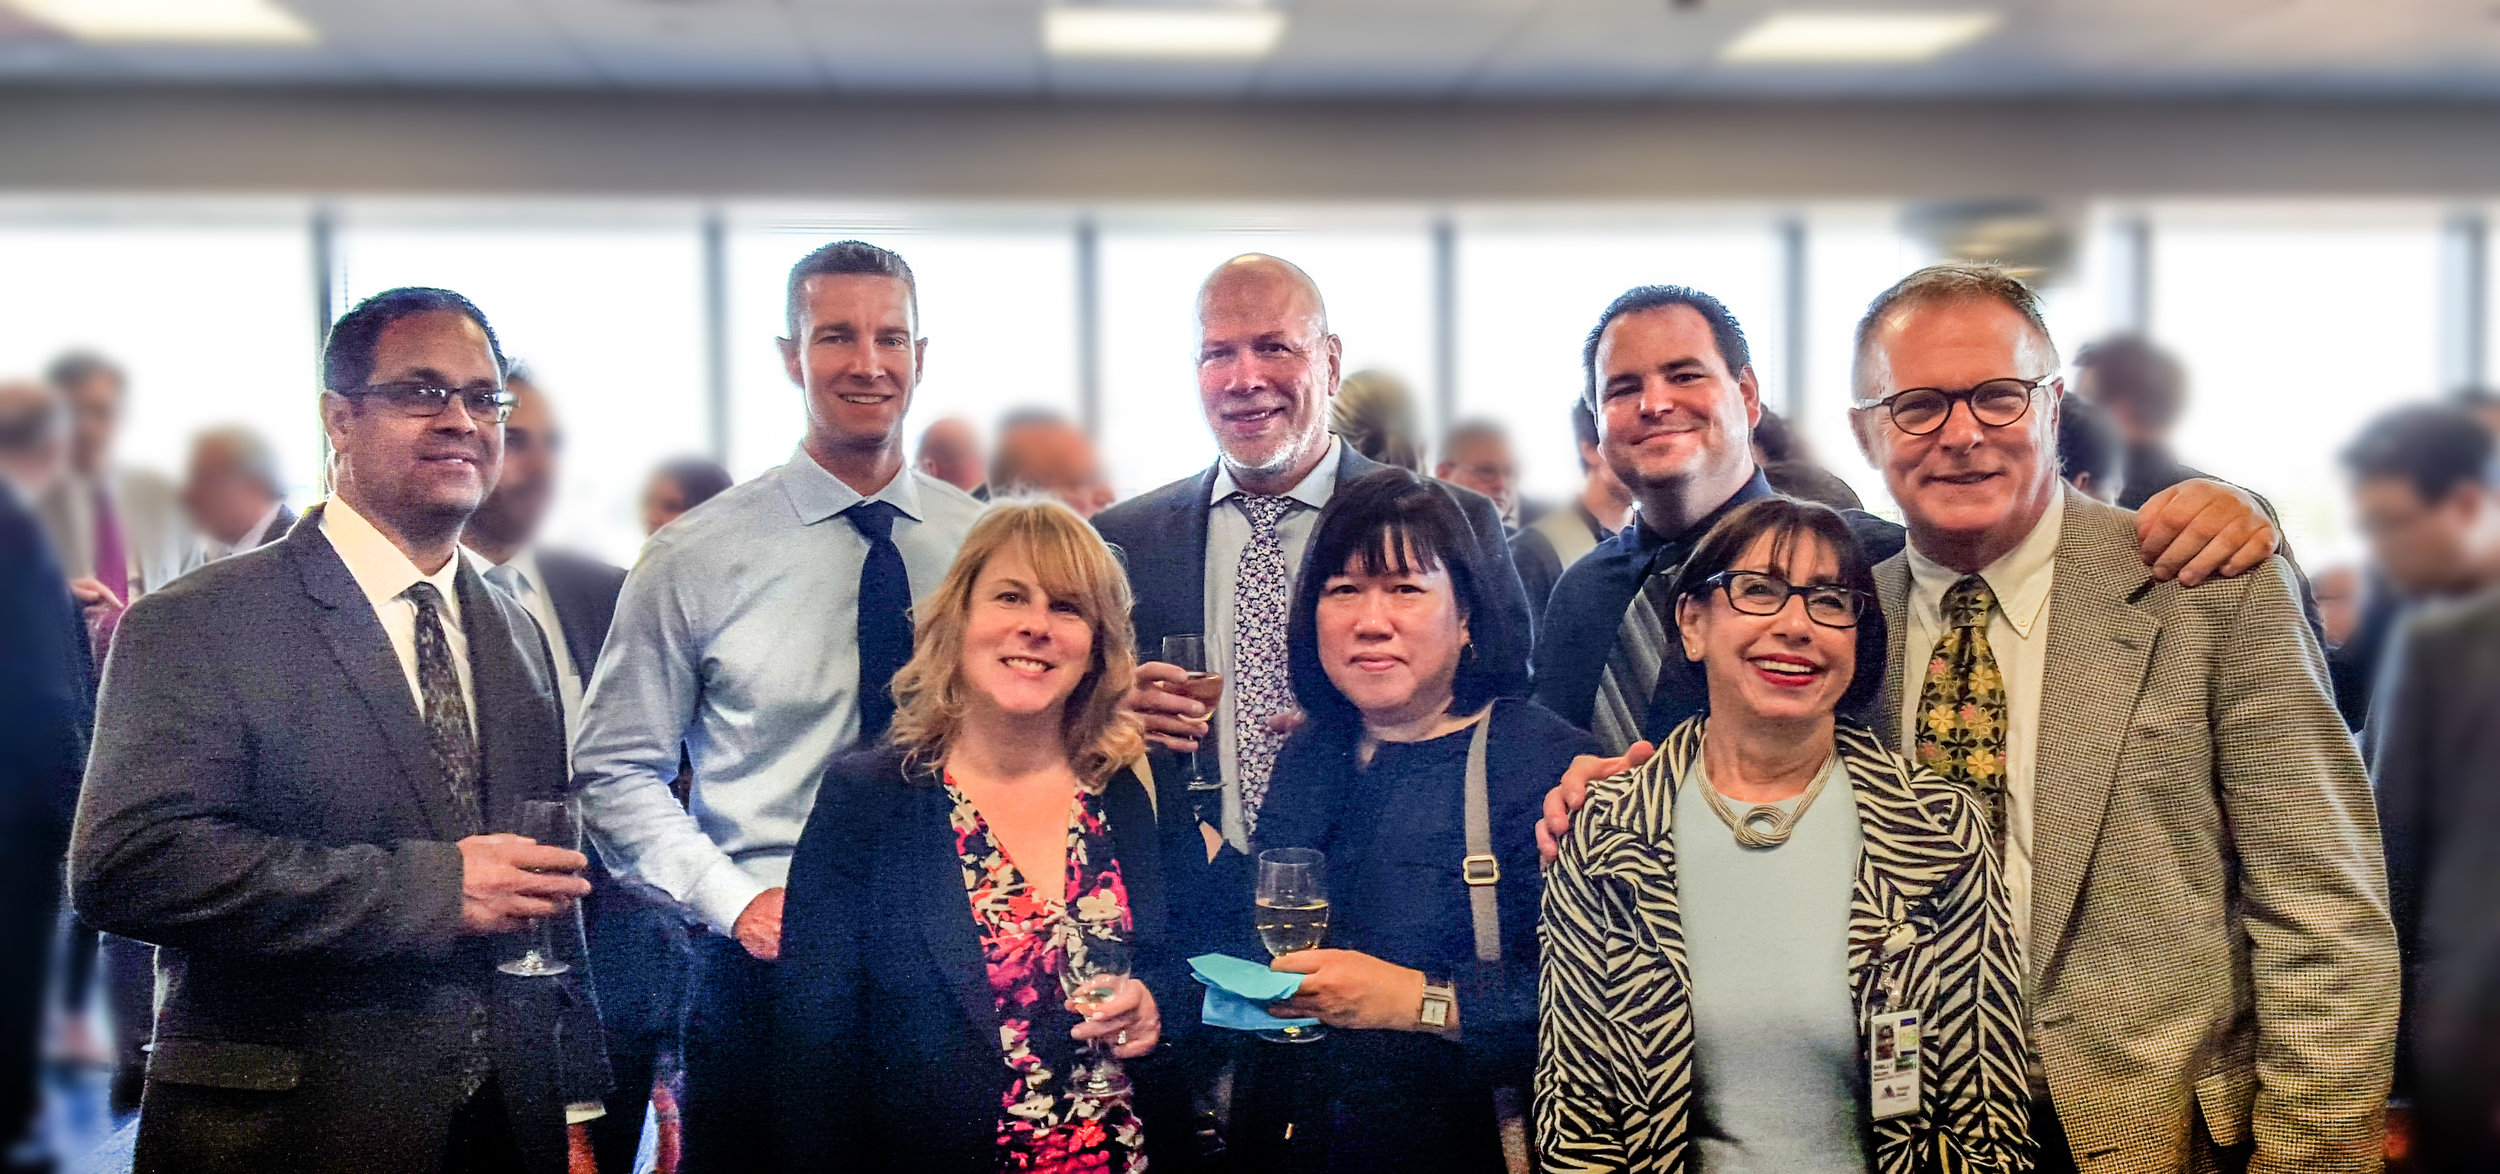 NK Project team and Senior Director Marketing & Communications at Mount Sinai Queens, Shelly Felder, celebrate the opening of the new ER